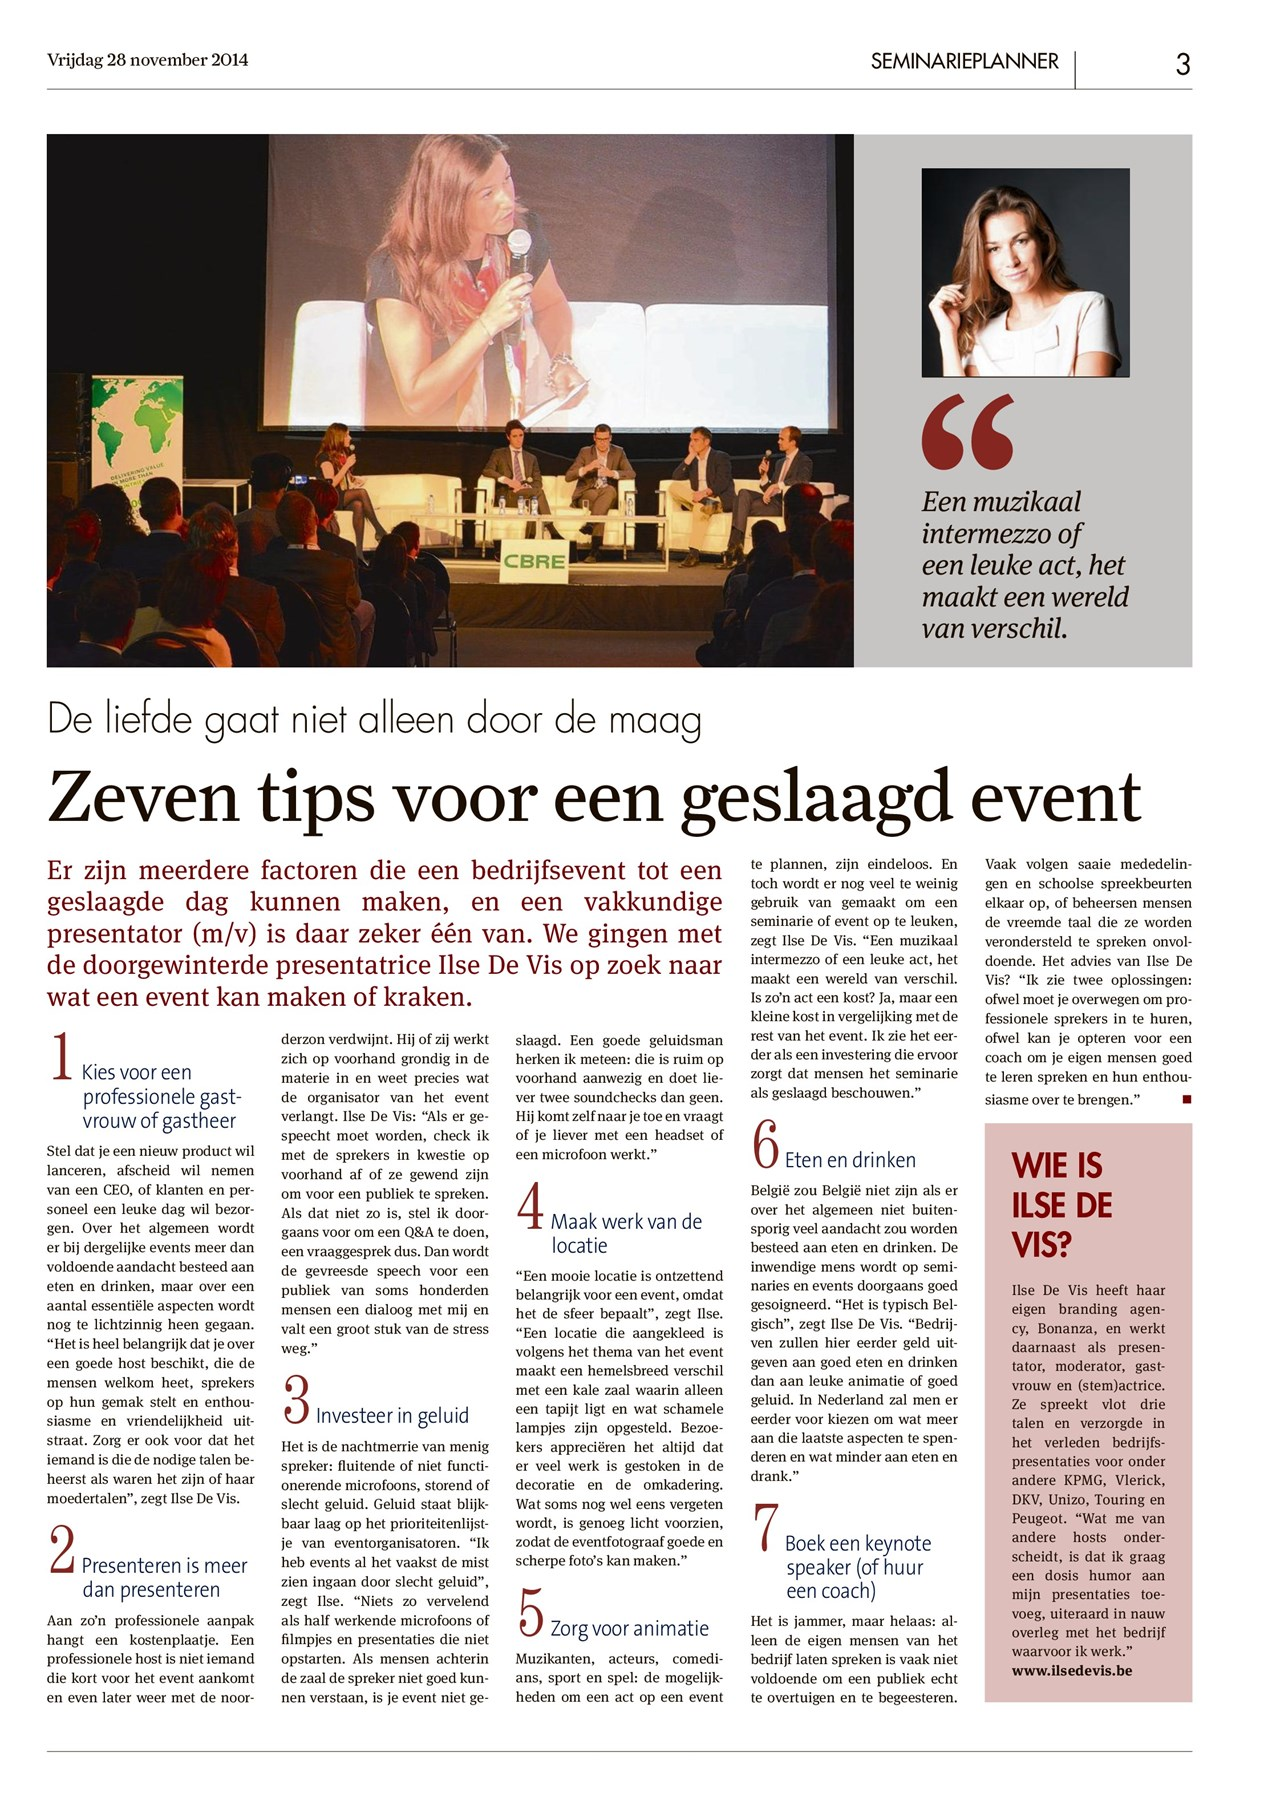 event organiseren tips